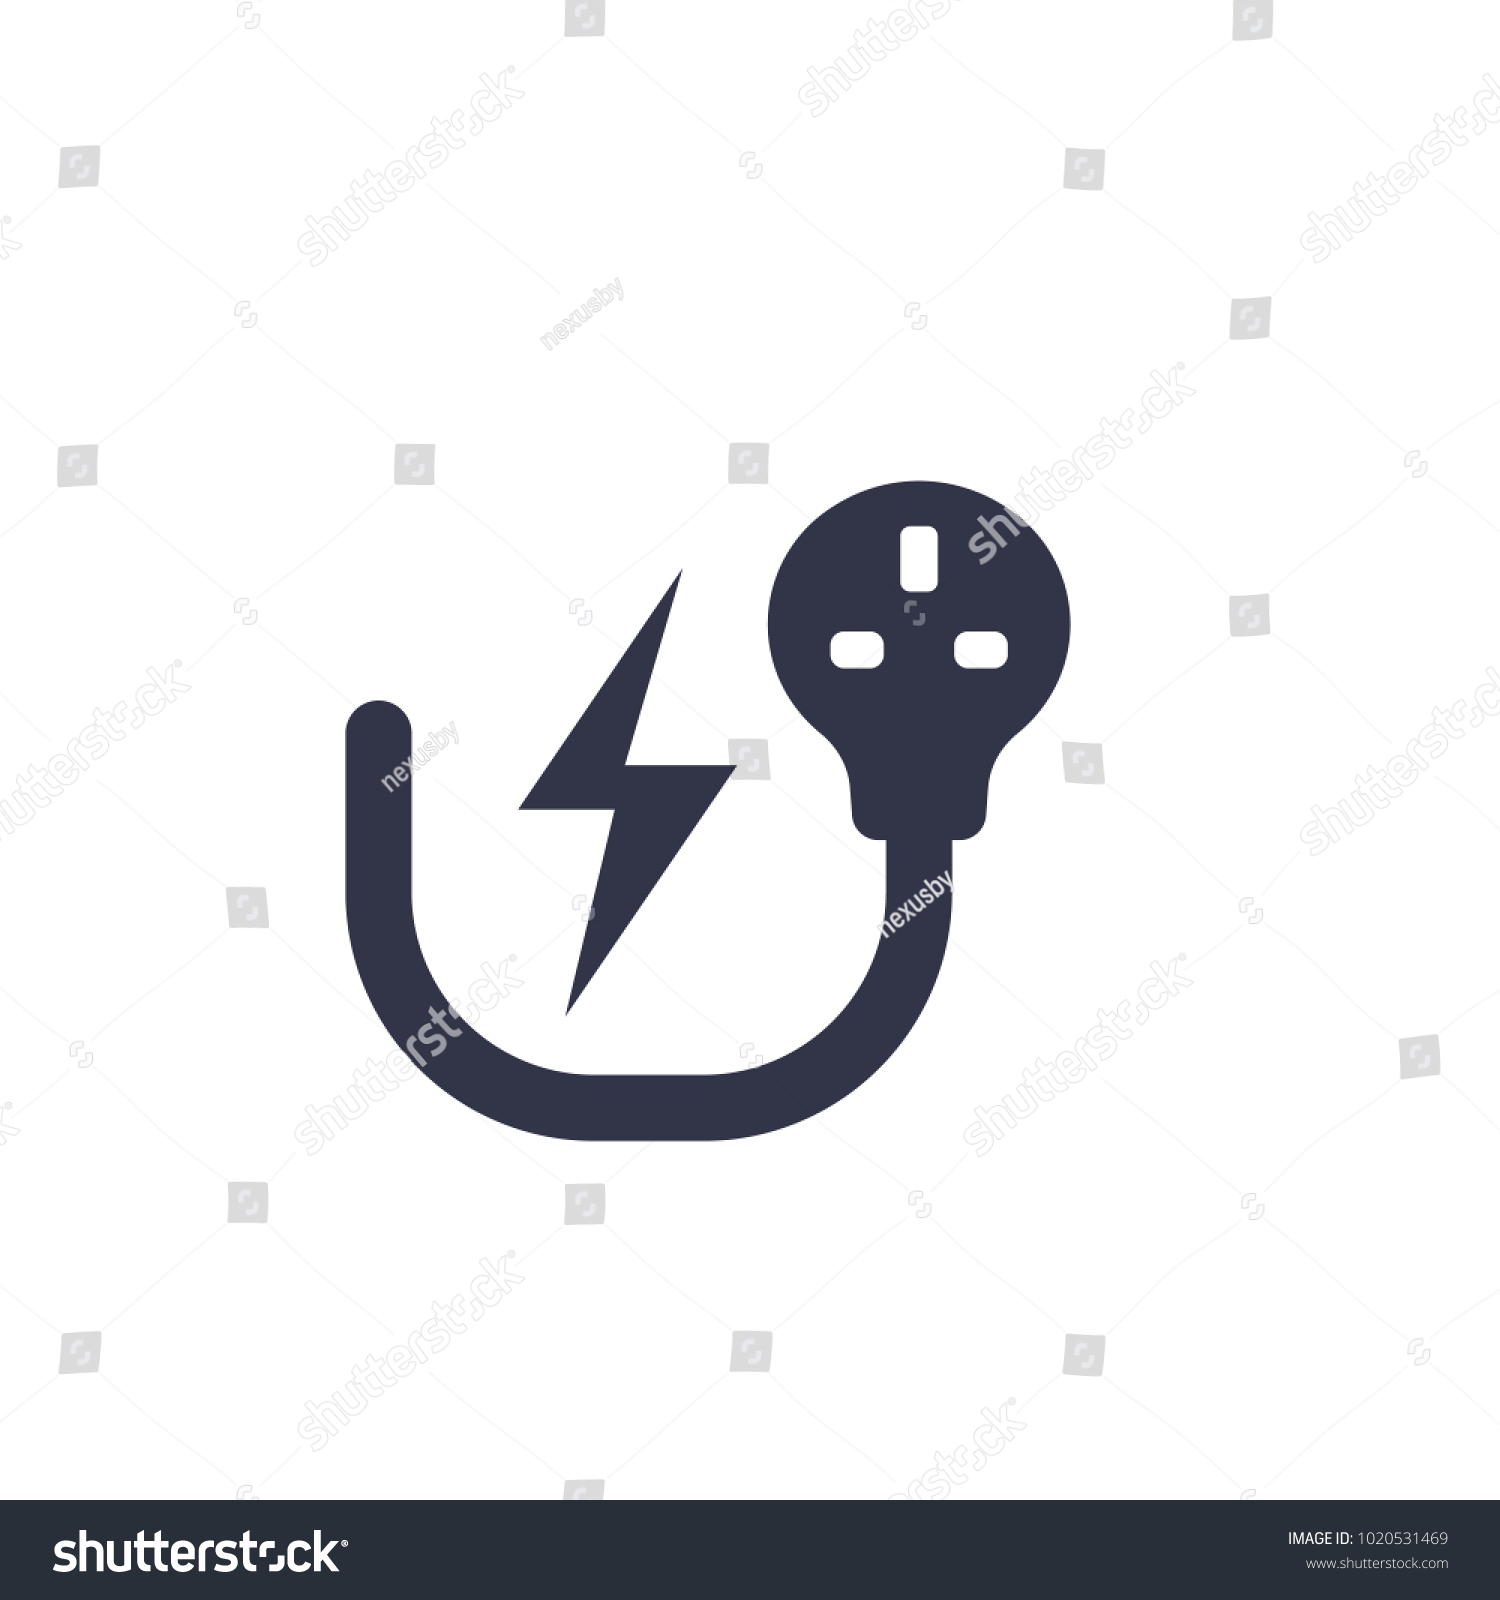 Uk Electric Plug Electricity Symbol On Stock Vector HD (Royalty Free ...